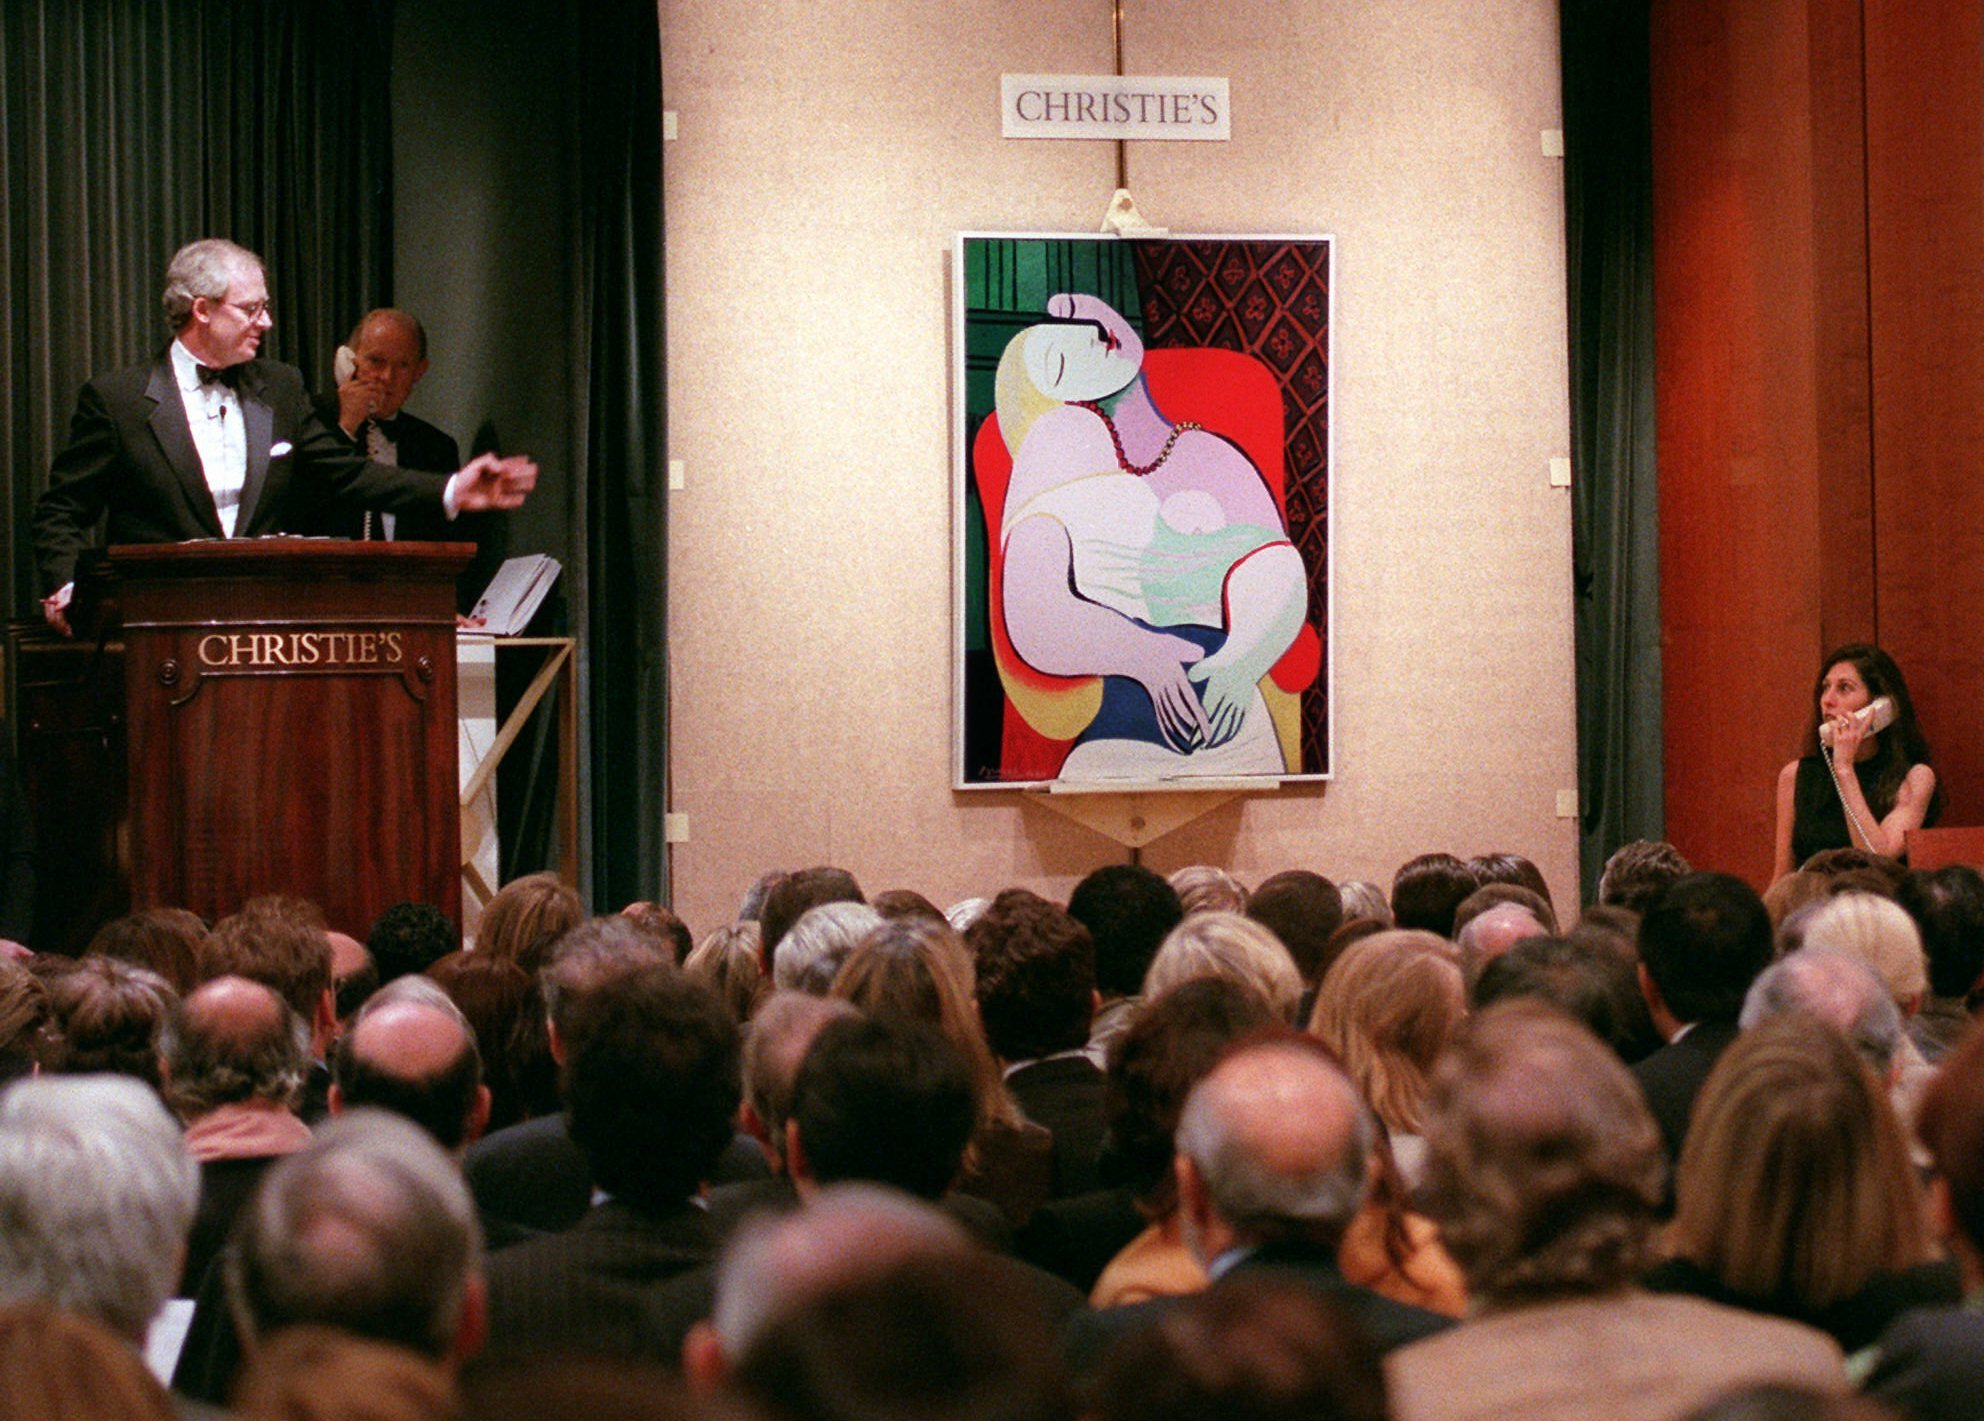 Years After The Elbow Incident, Steve Wynn Sells Picasso's 'Le Rêve' For $155 Million